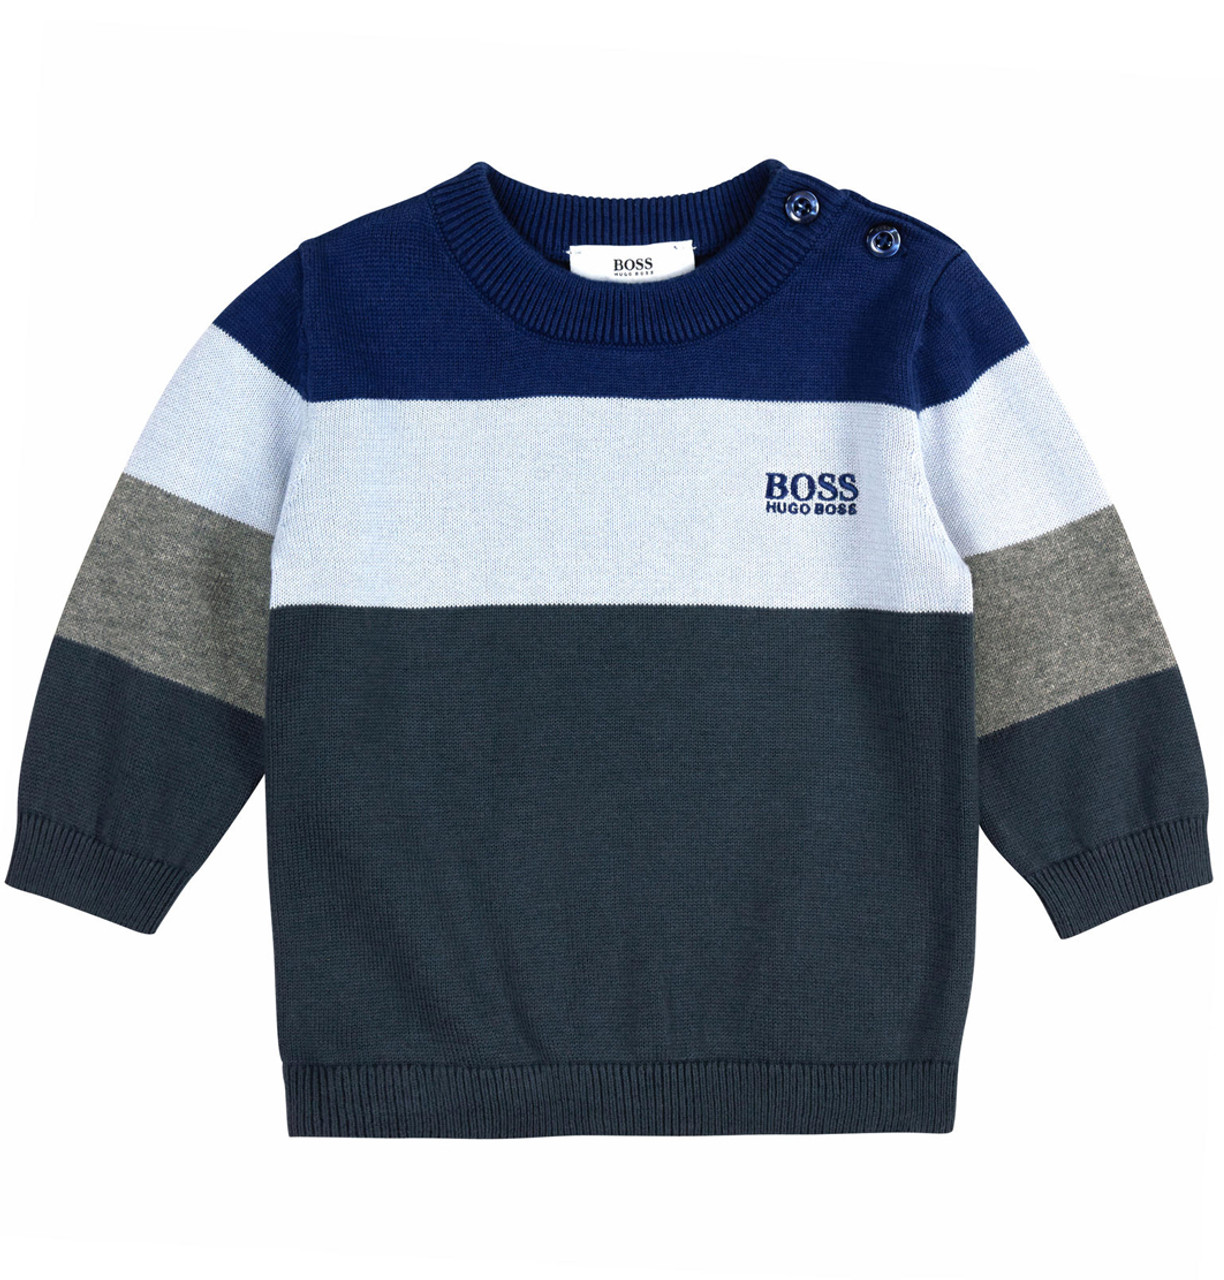 BOSS Pima Cotton sweater - Le Petit Kids